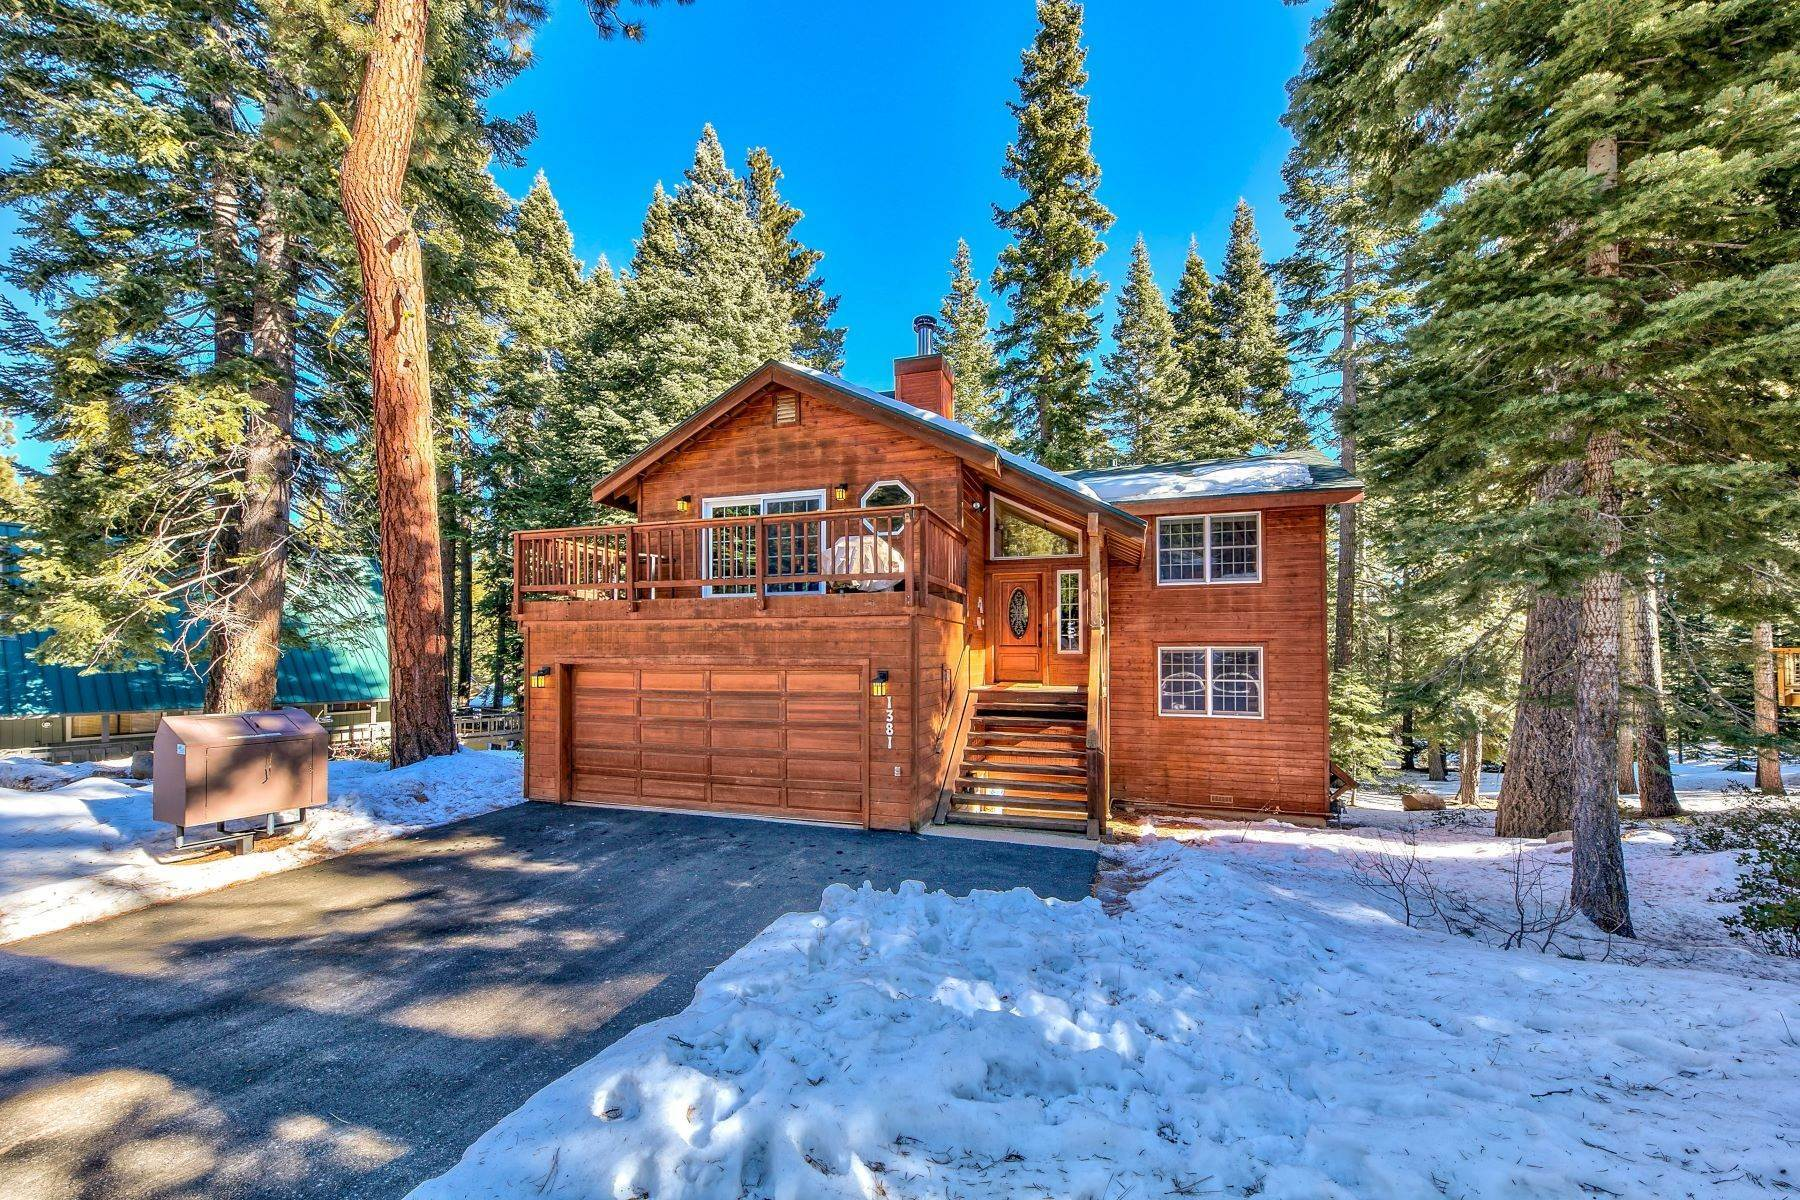 Property for Active at Peaceful & Quiet Mountain Setting 1381 Kings Vista Ct. Tahoe Vista, California 96148 United States